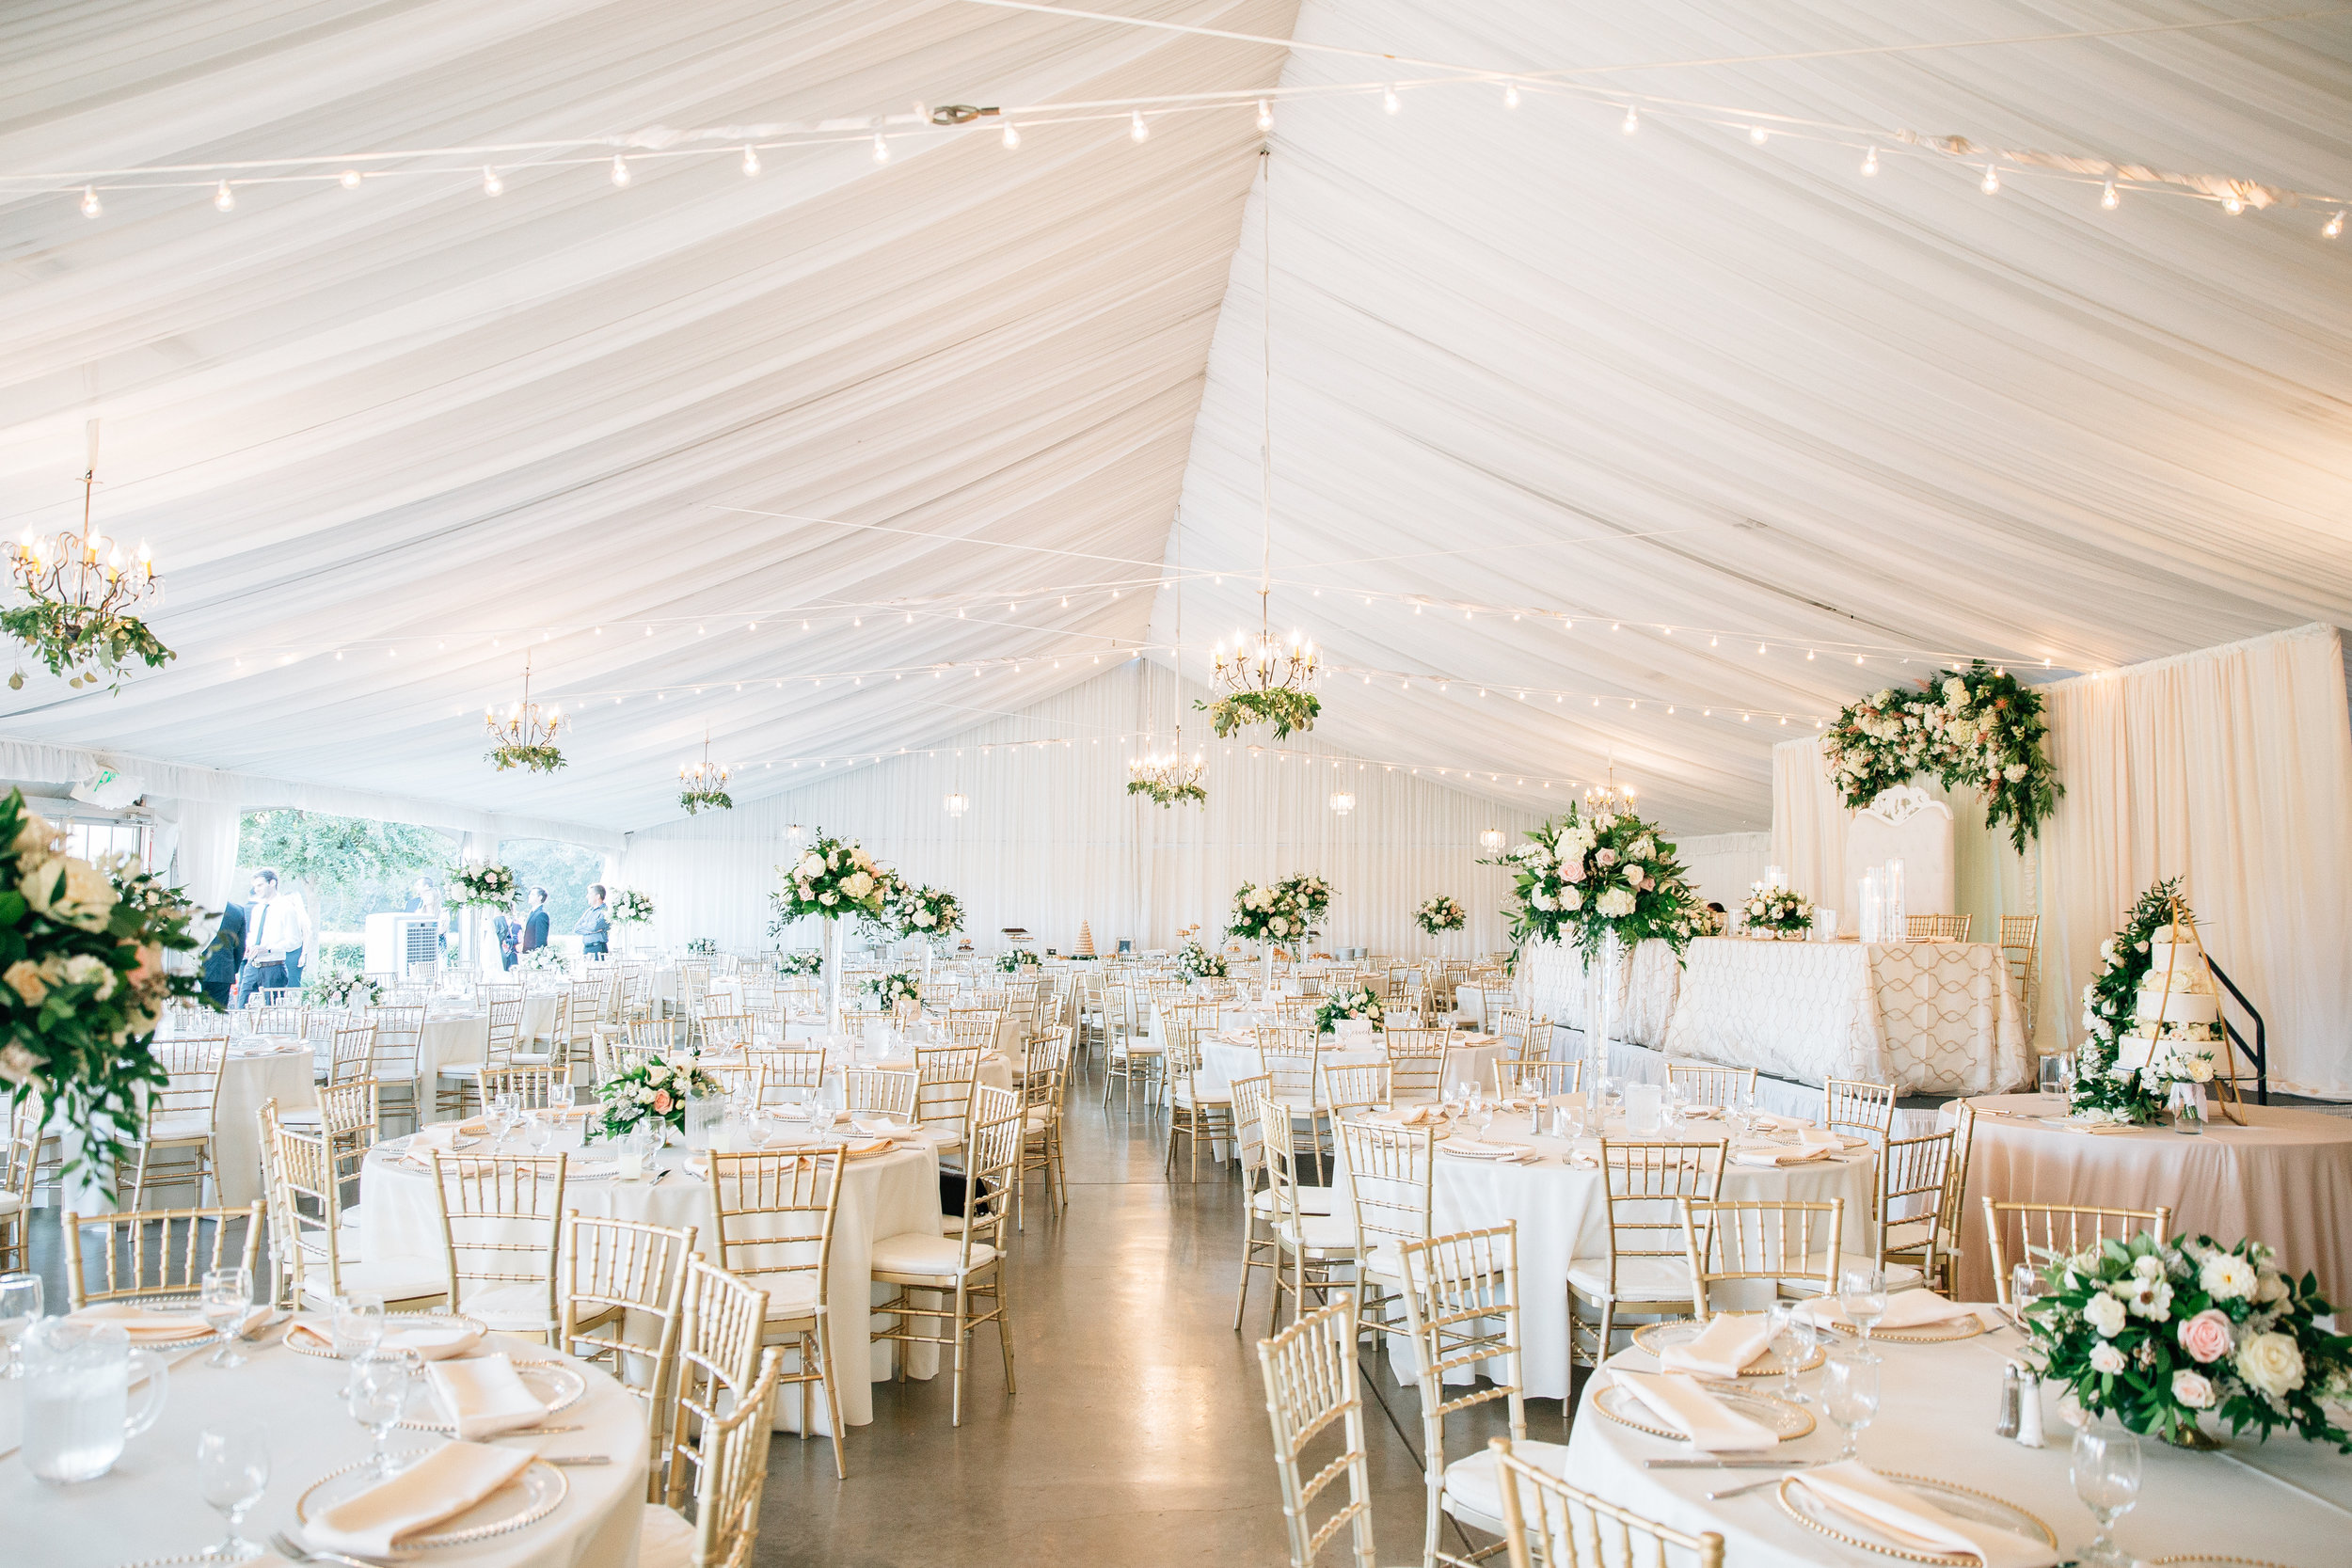 tent_upscale_wedding_white_blush_flowers_greenery_lush_upscale_violette_fleurs_anna_perevertaylo.jpg